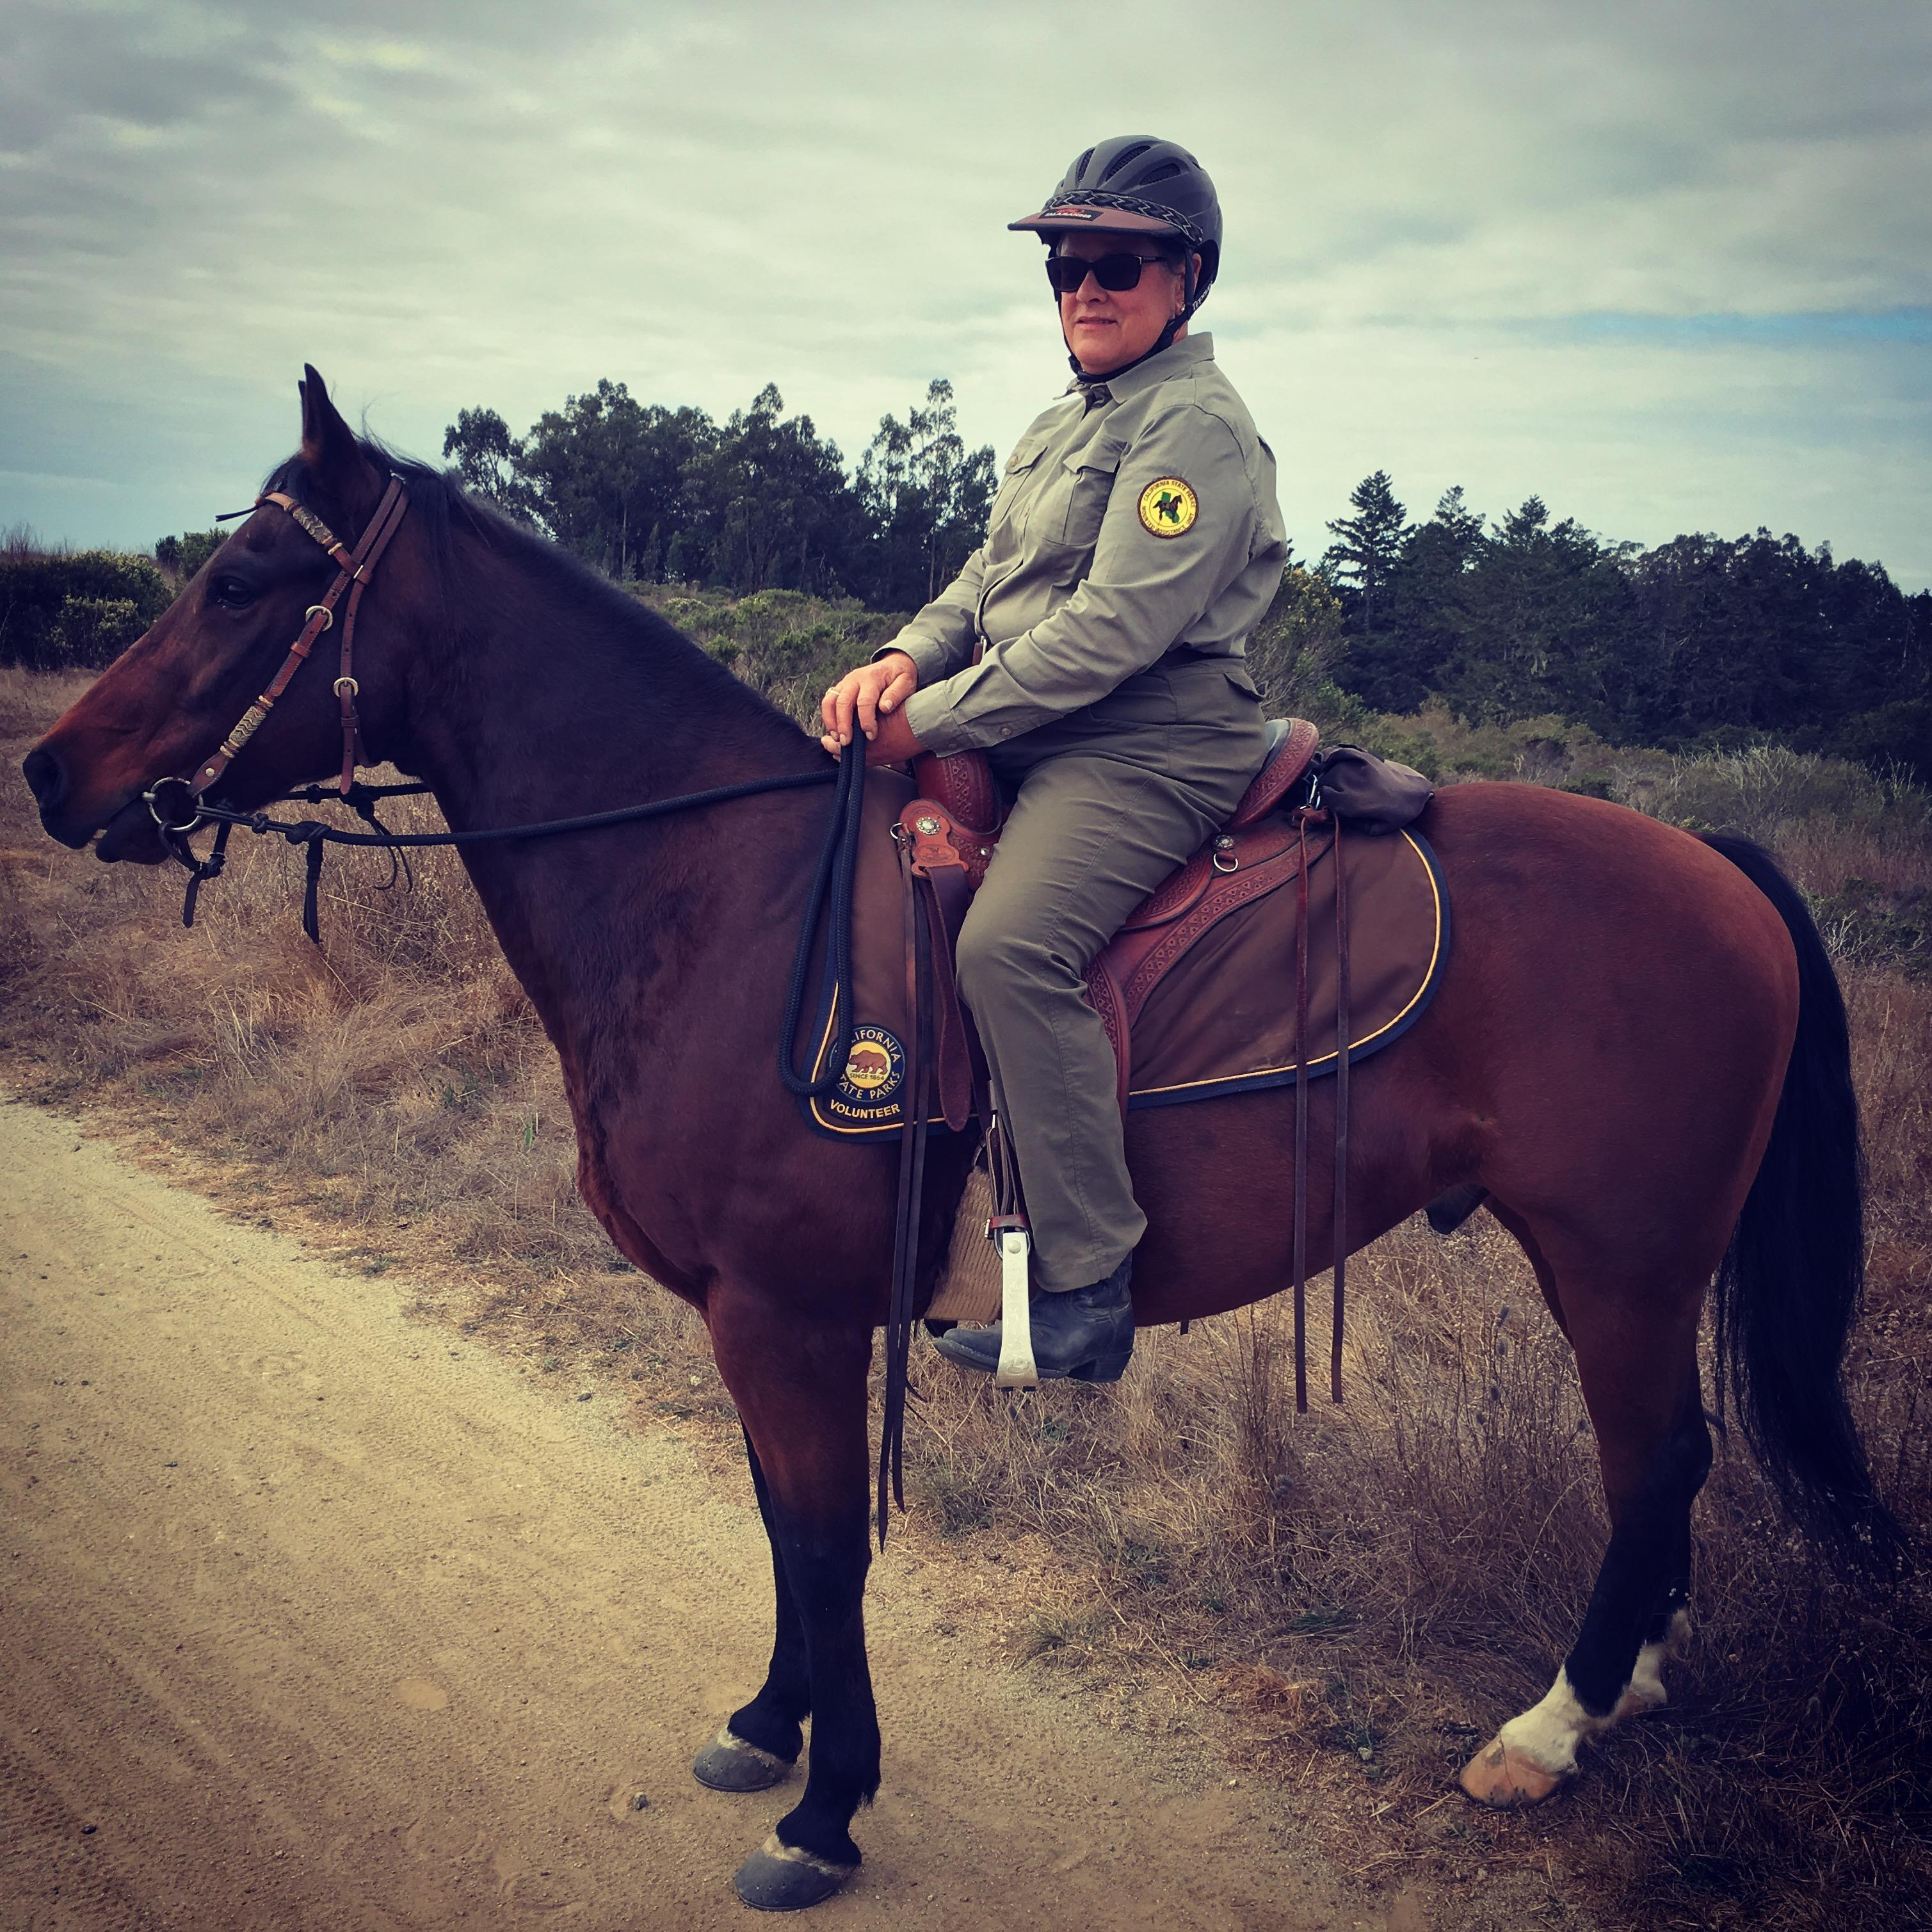 Park ranger riding a horse at Wilder Ranch State Park